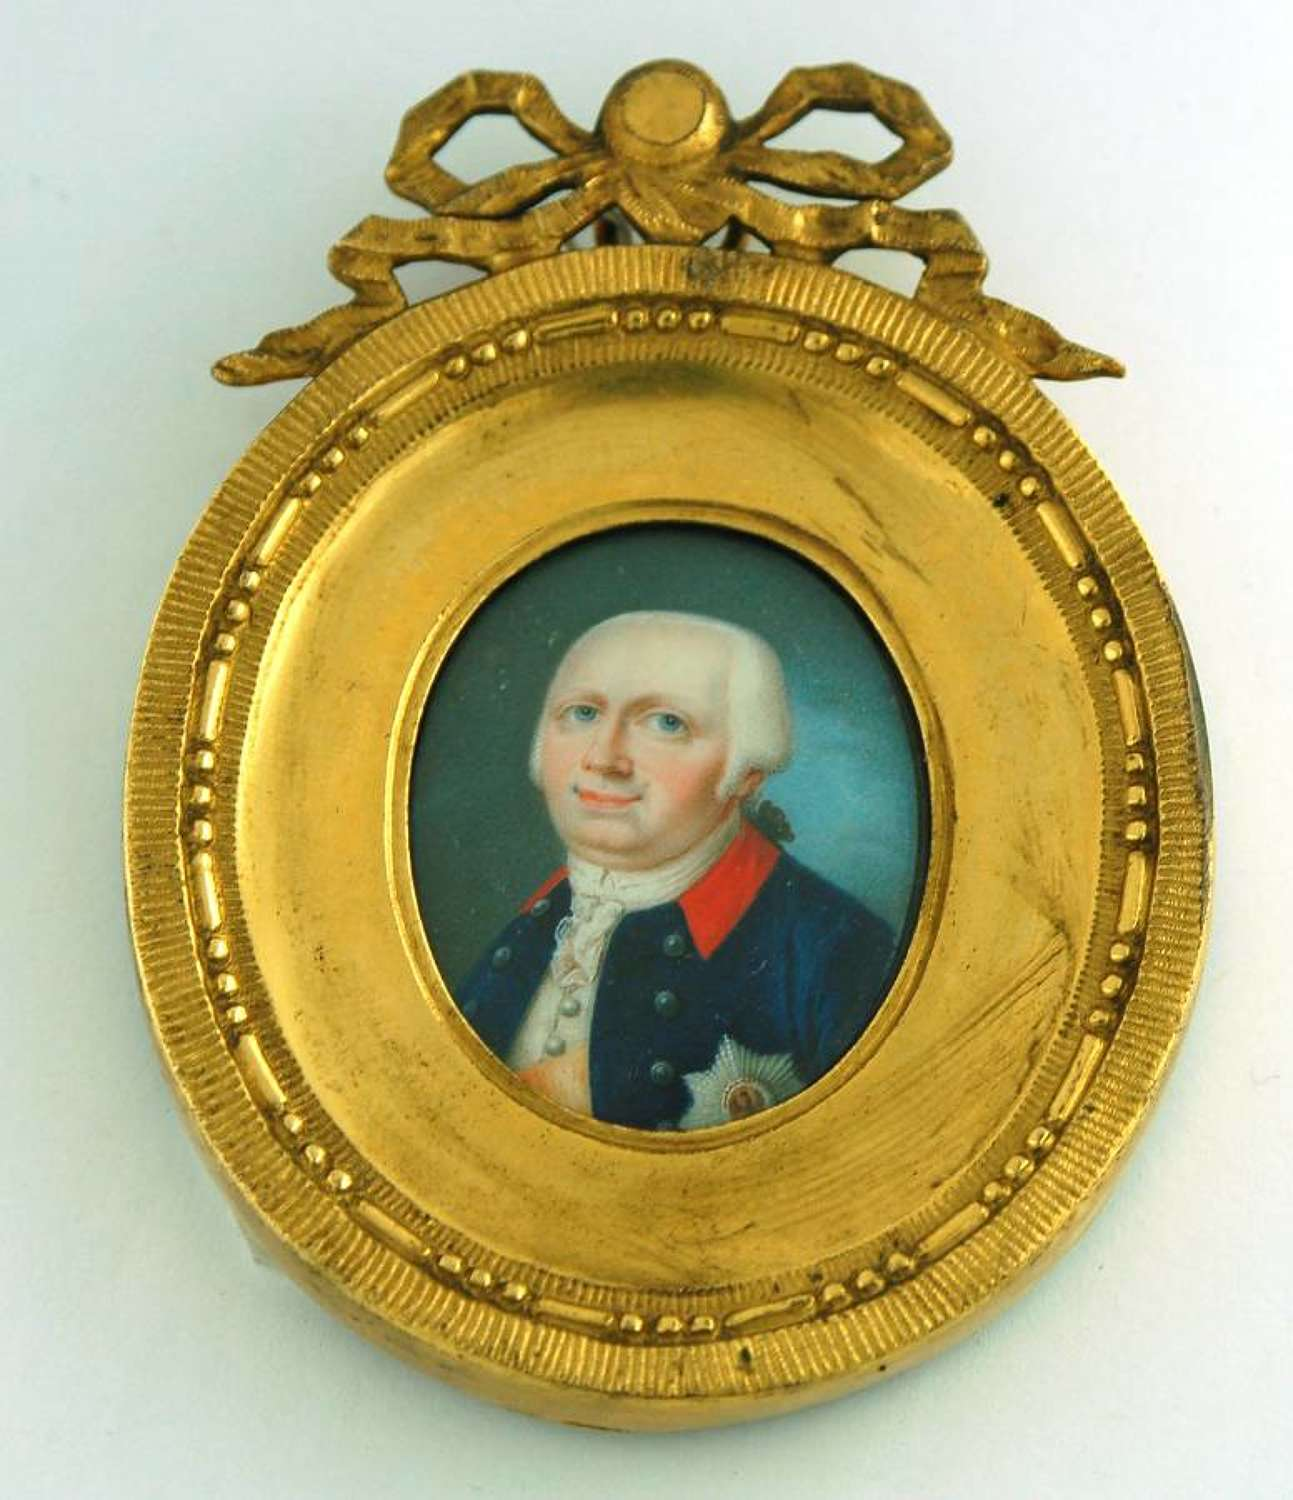 Frederick William King of Prussia